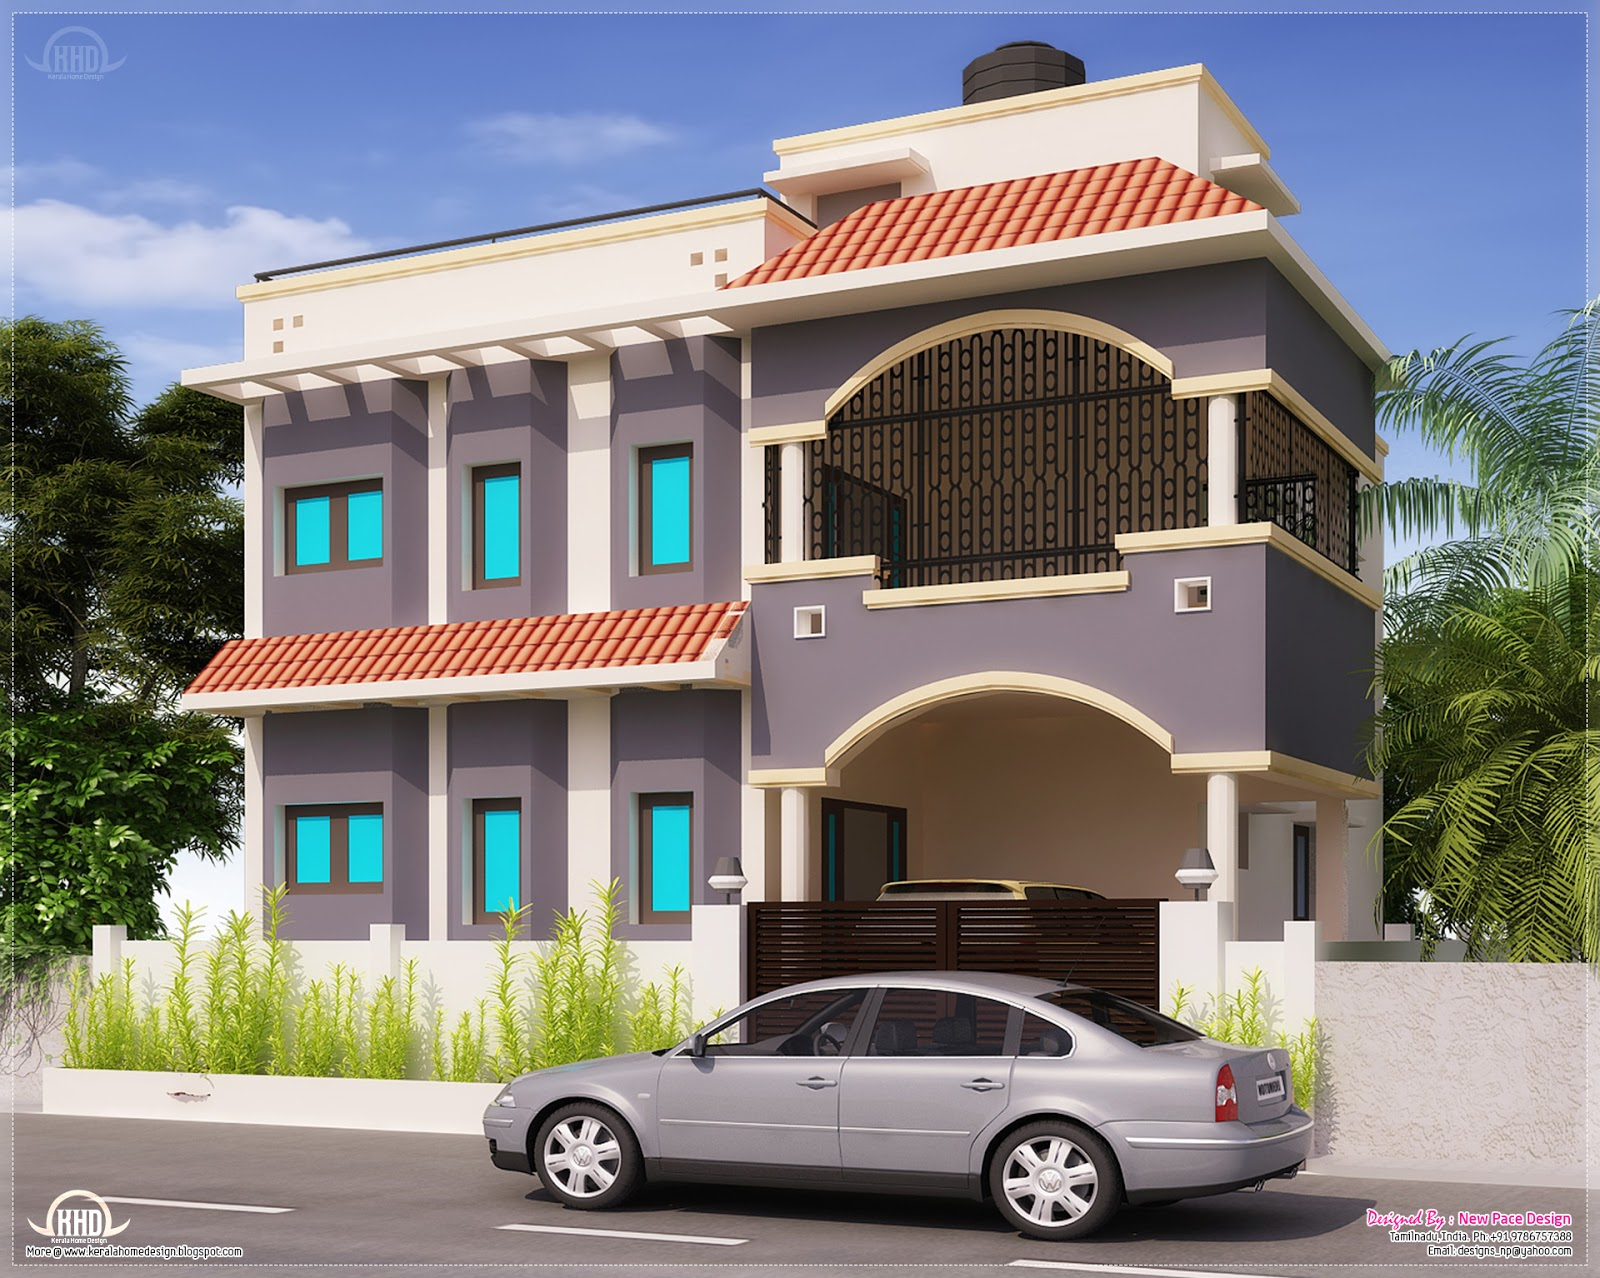 House design outer - 1675 Sq Ft Tamilnadu Home House Specification